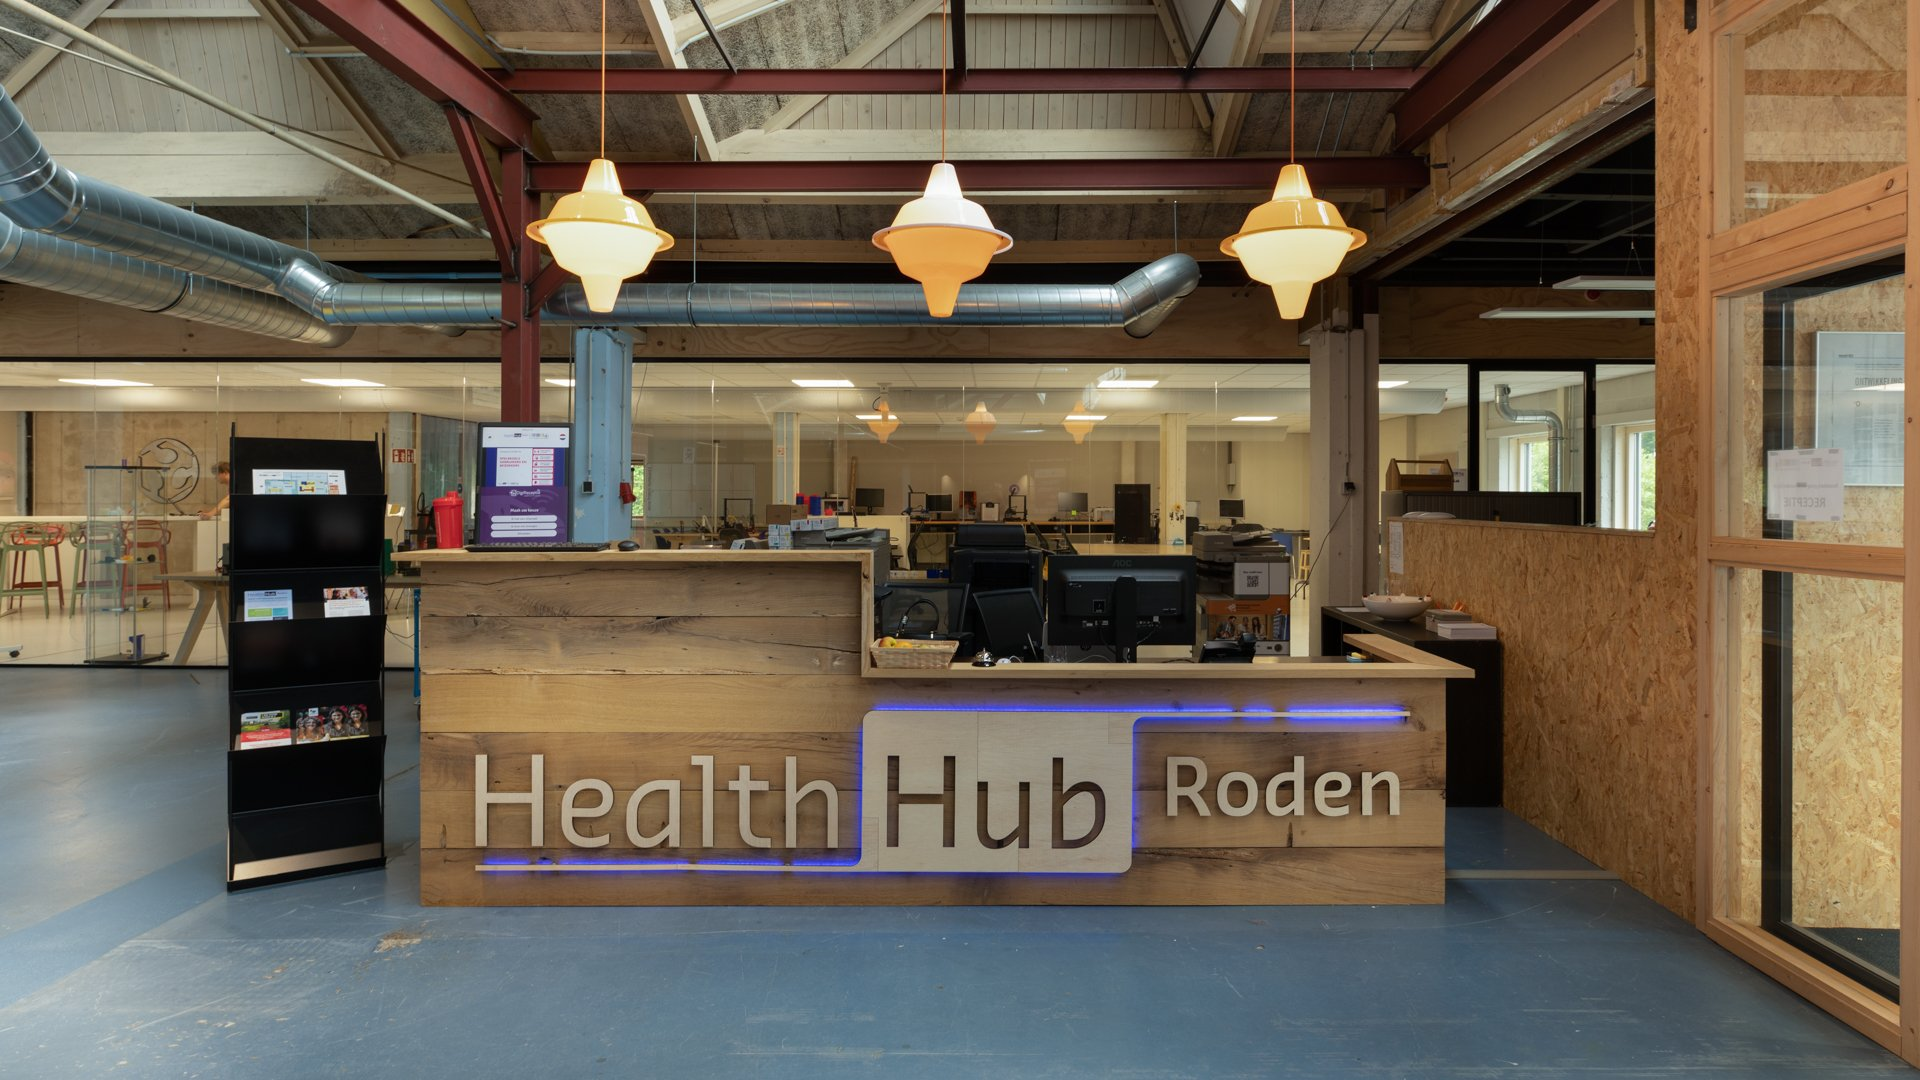 aatvos-health-hub-roden-third-place-design-000